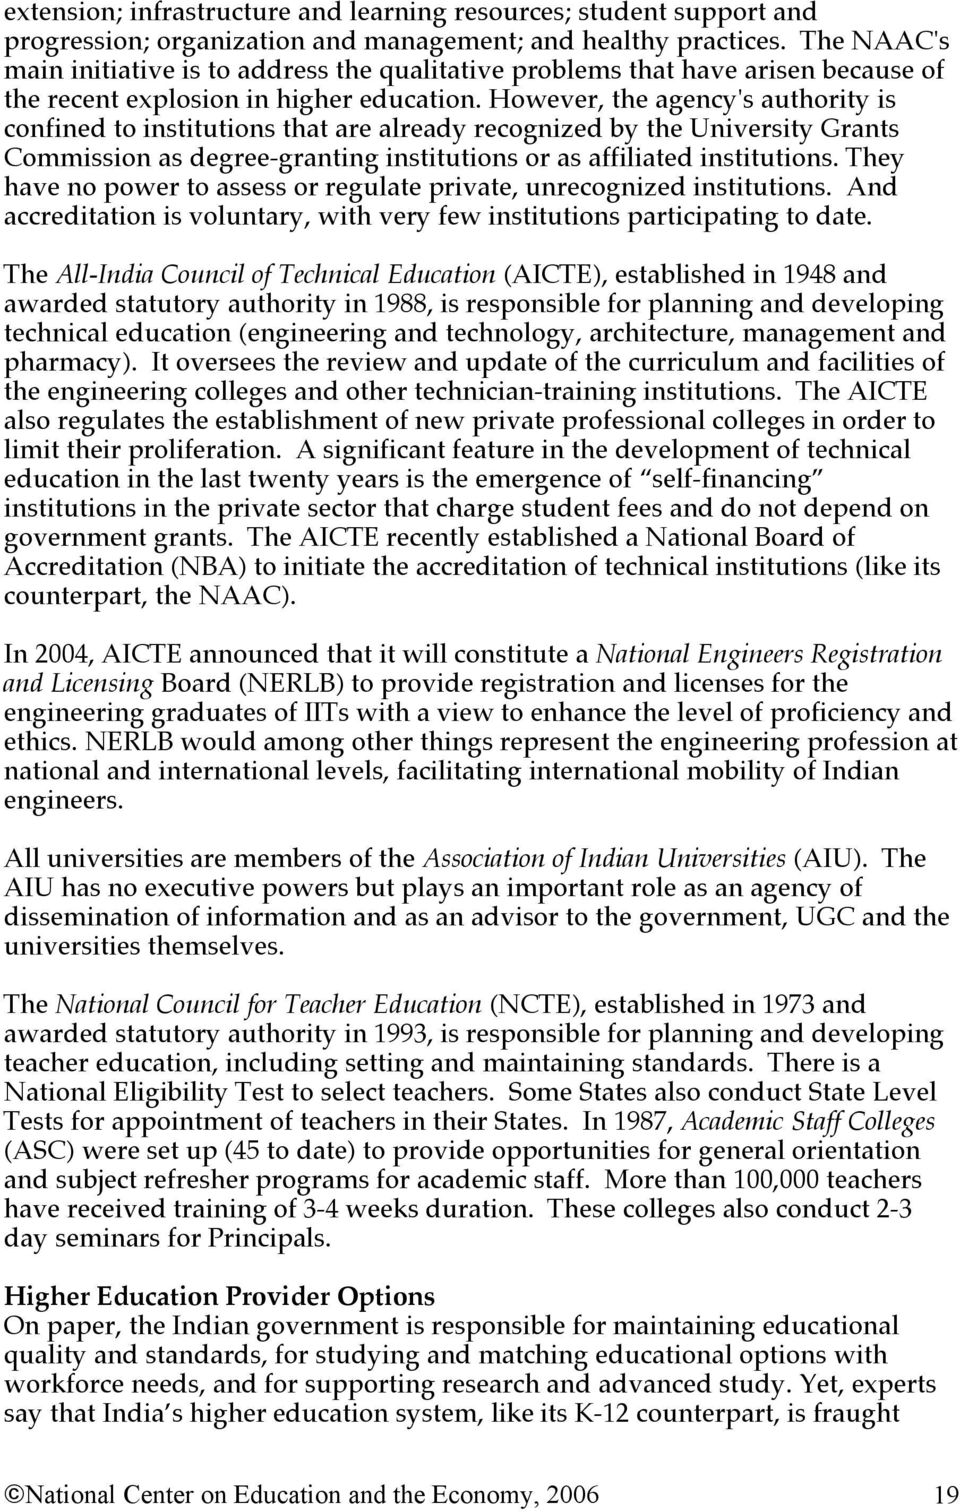 indian universities commission 1902 pdf